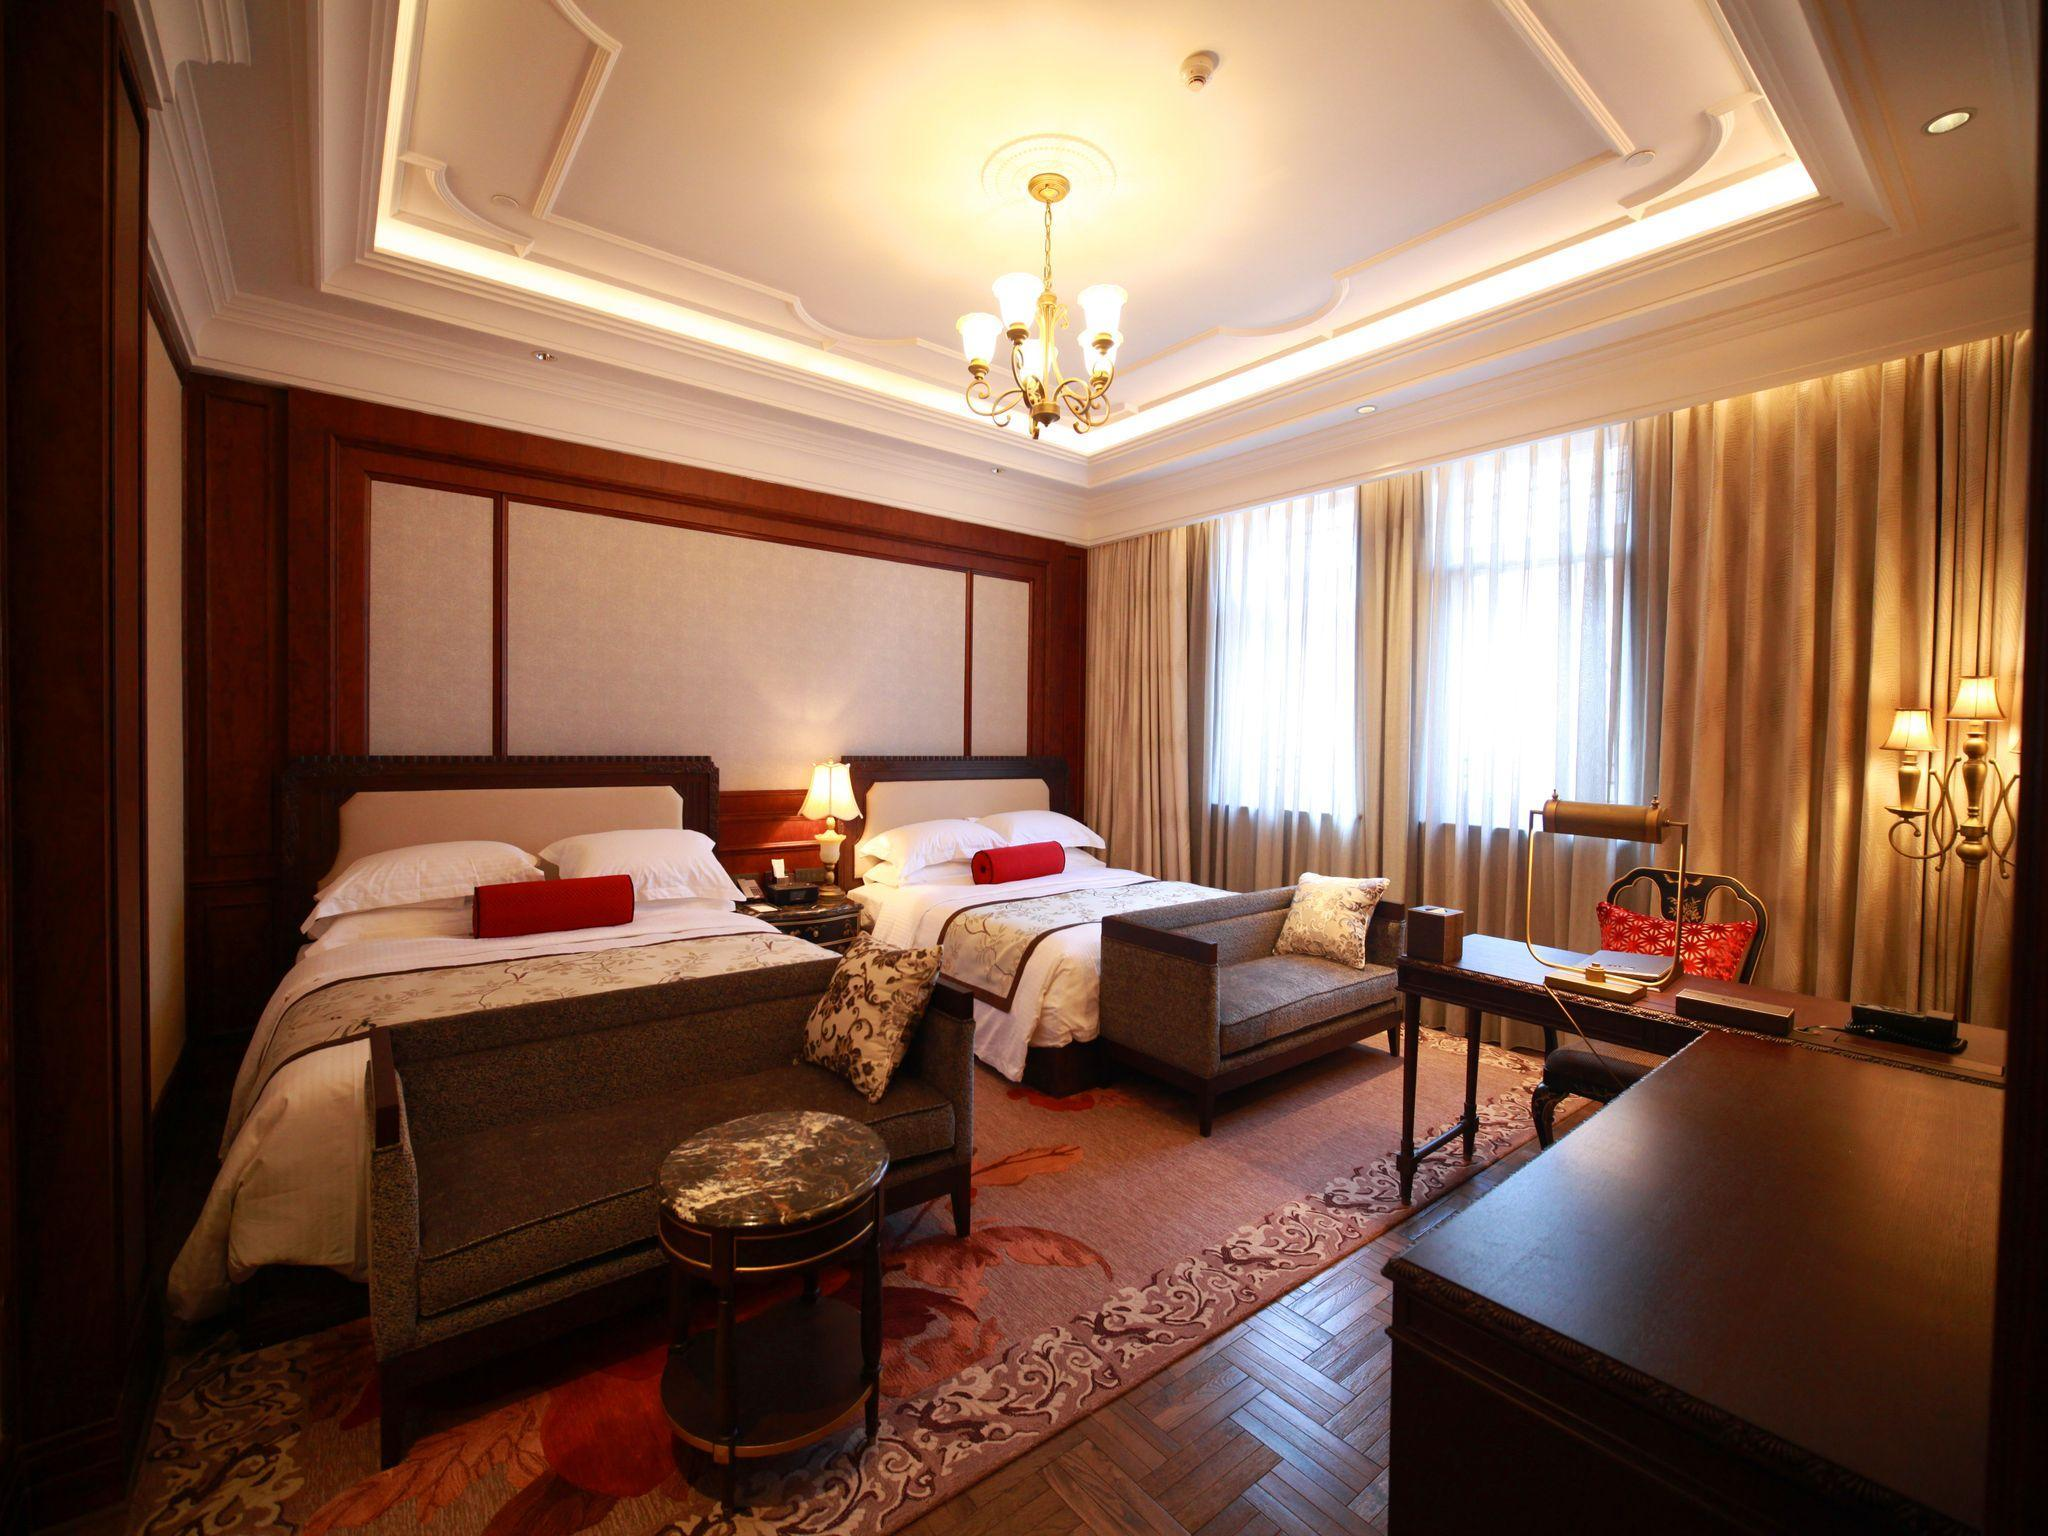 Shanghai Gay Travel Guide Hotels, Bars Traveling To China